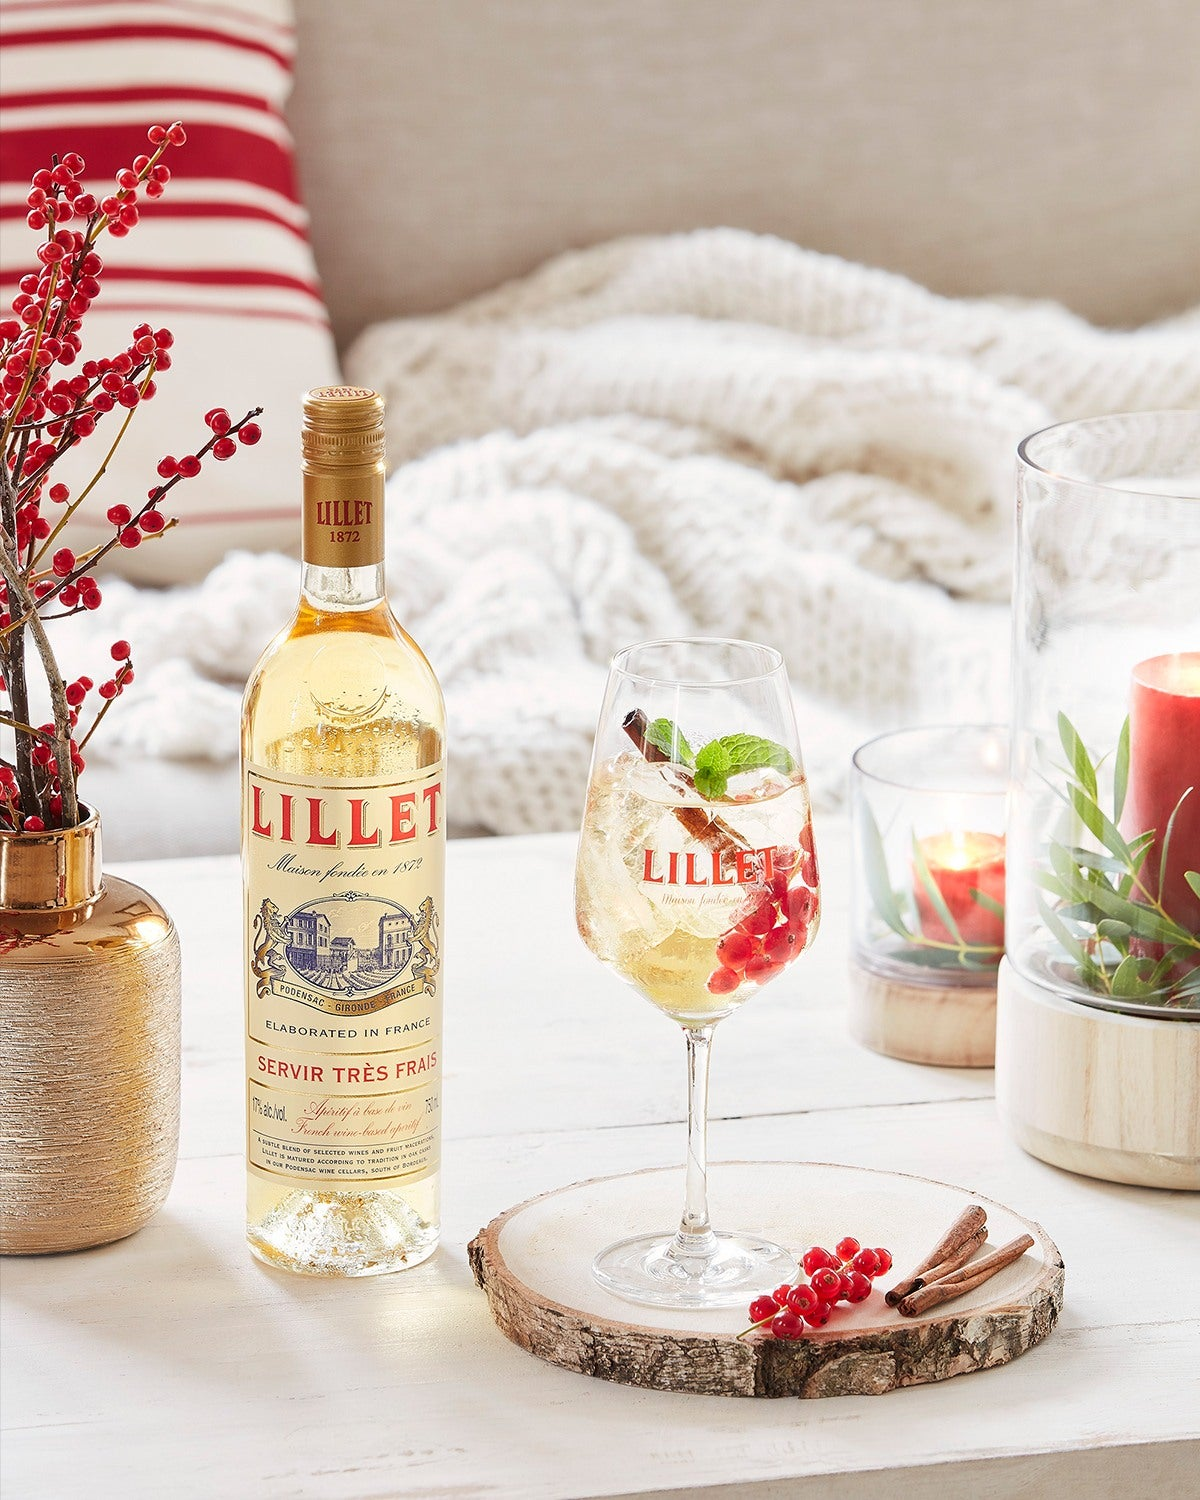 cocktail lillet winter vive